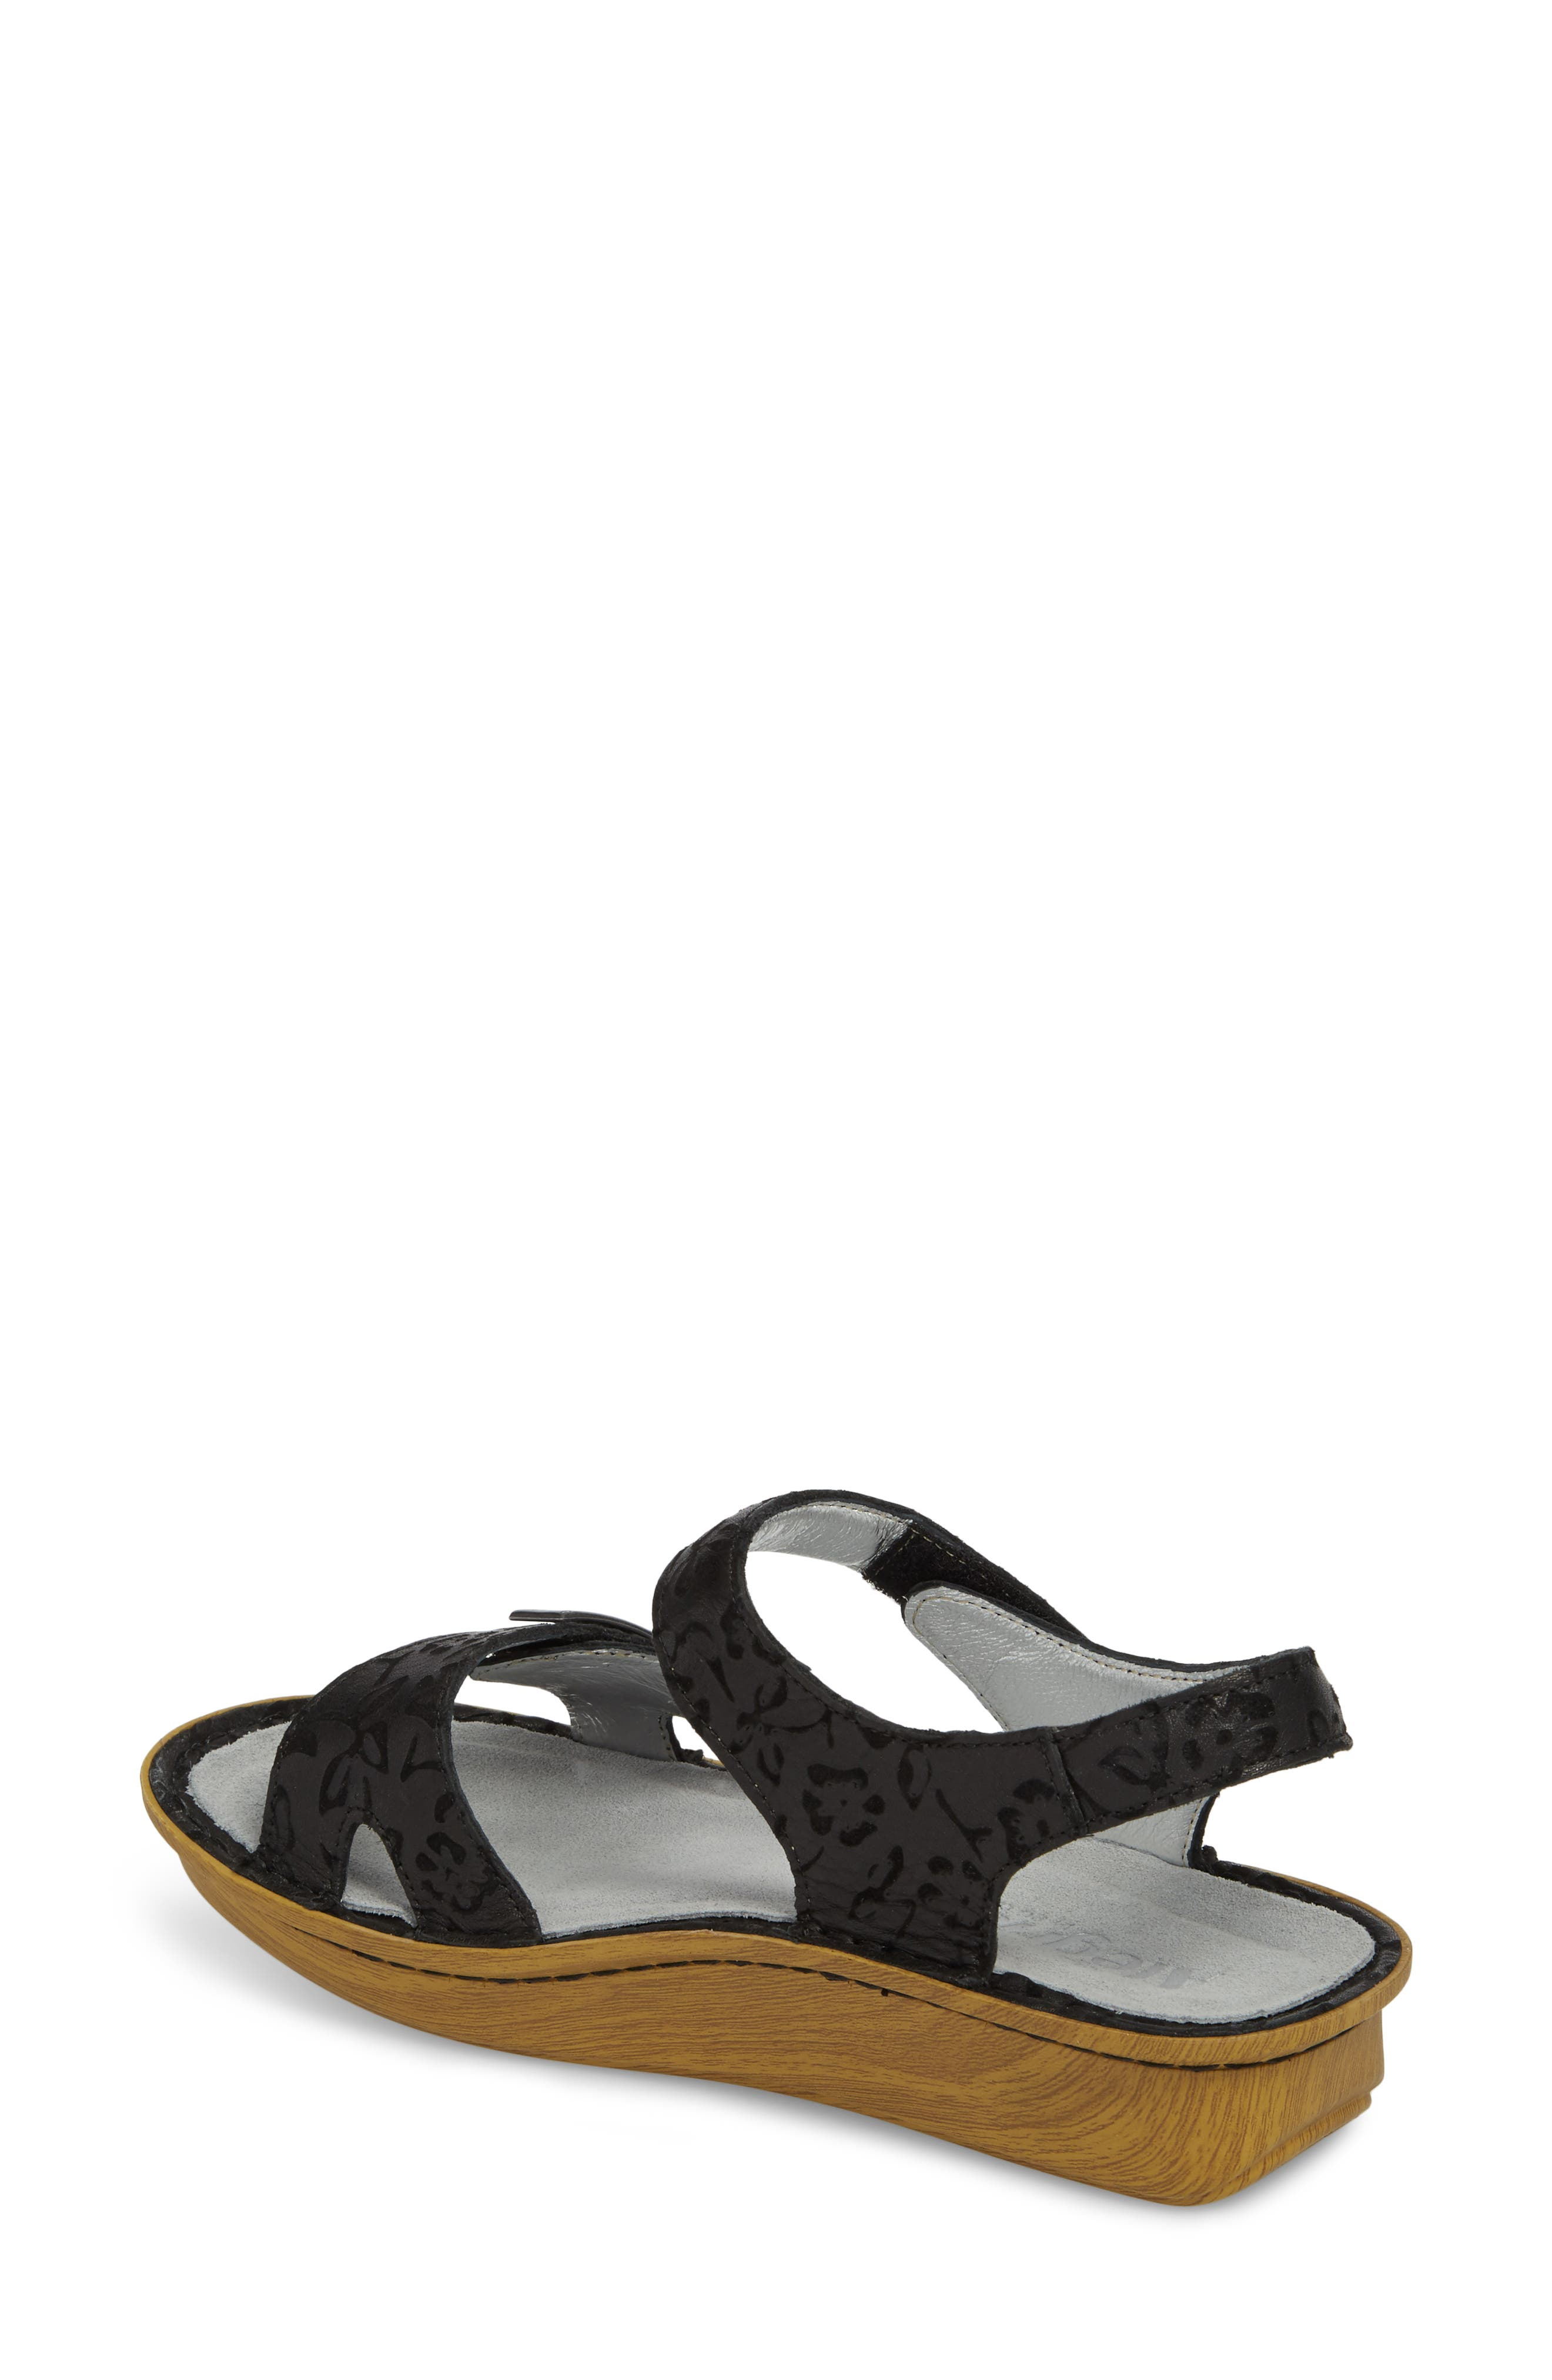 Vienna Sandal,                             Alternate thumbnail 2, color,                             MORNING GLORY BLACK LEATHER